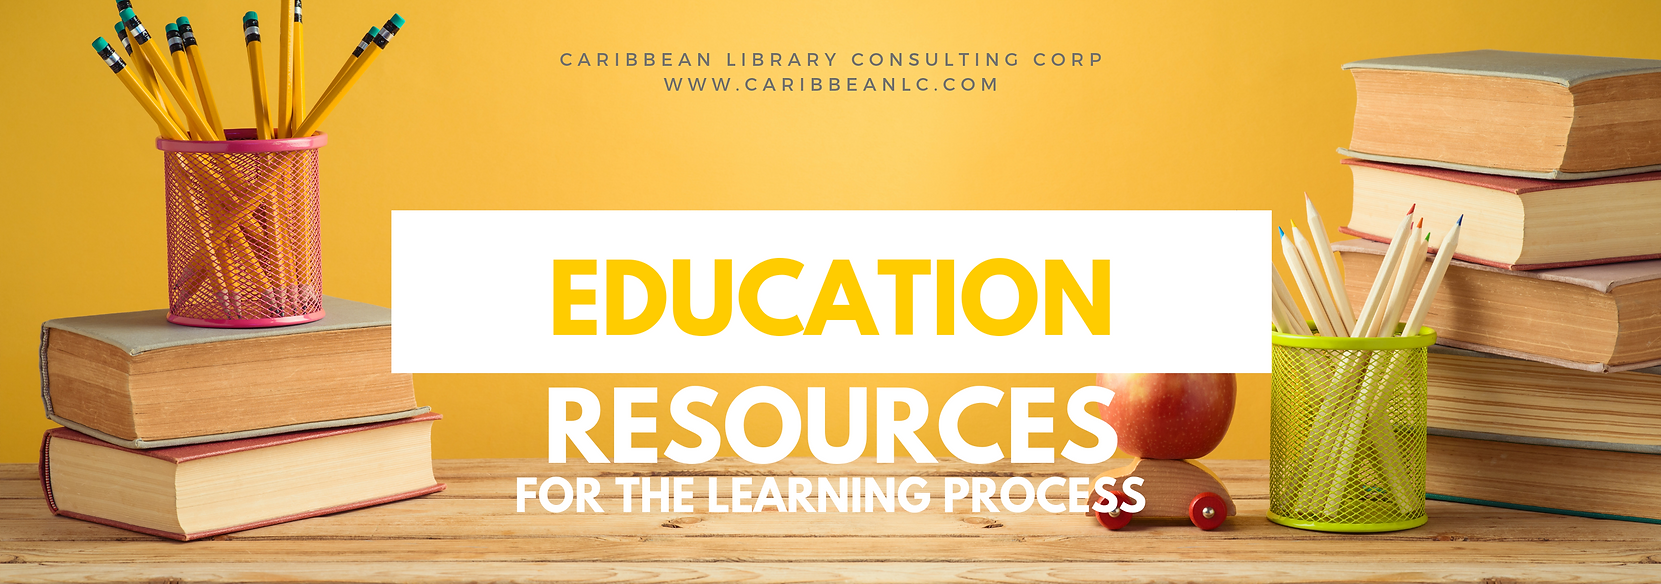 EDUCATION RESOURCES CLC BANNER.png